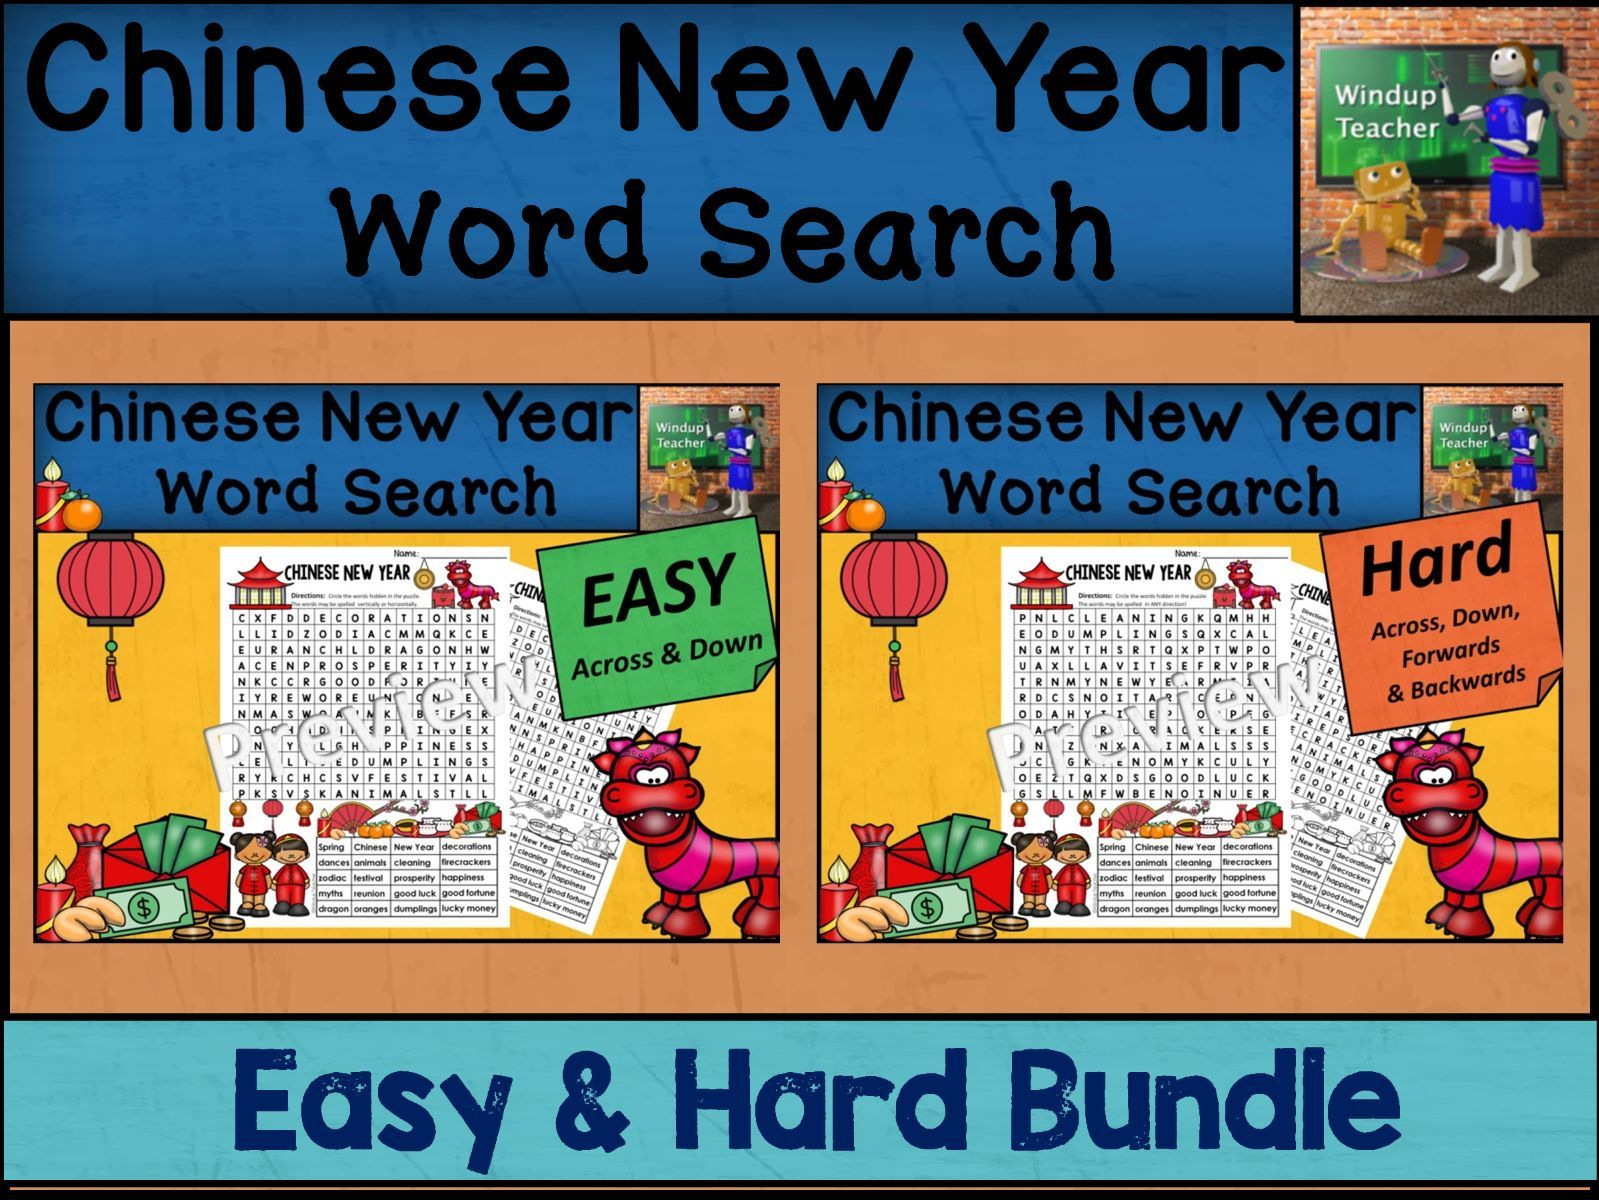 Chinese New Year Word Search BUNDLE - Easy and Hard Bundle